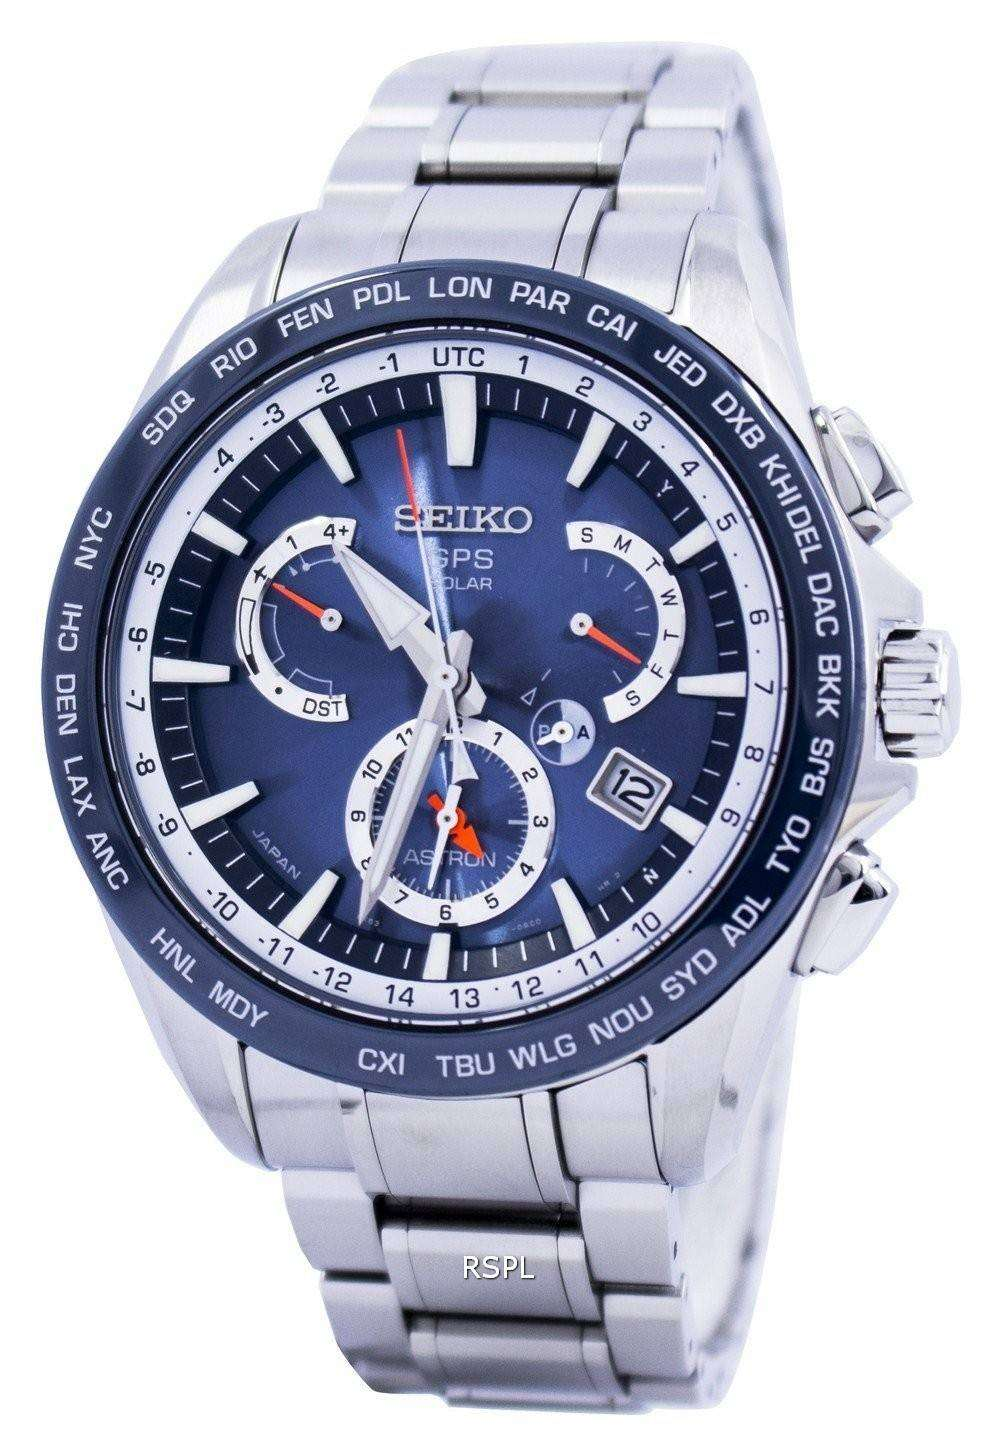 Seiko Astron Gps Solar Dual Time Japan Made Sse053